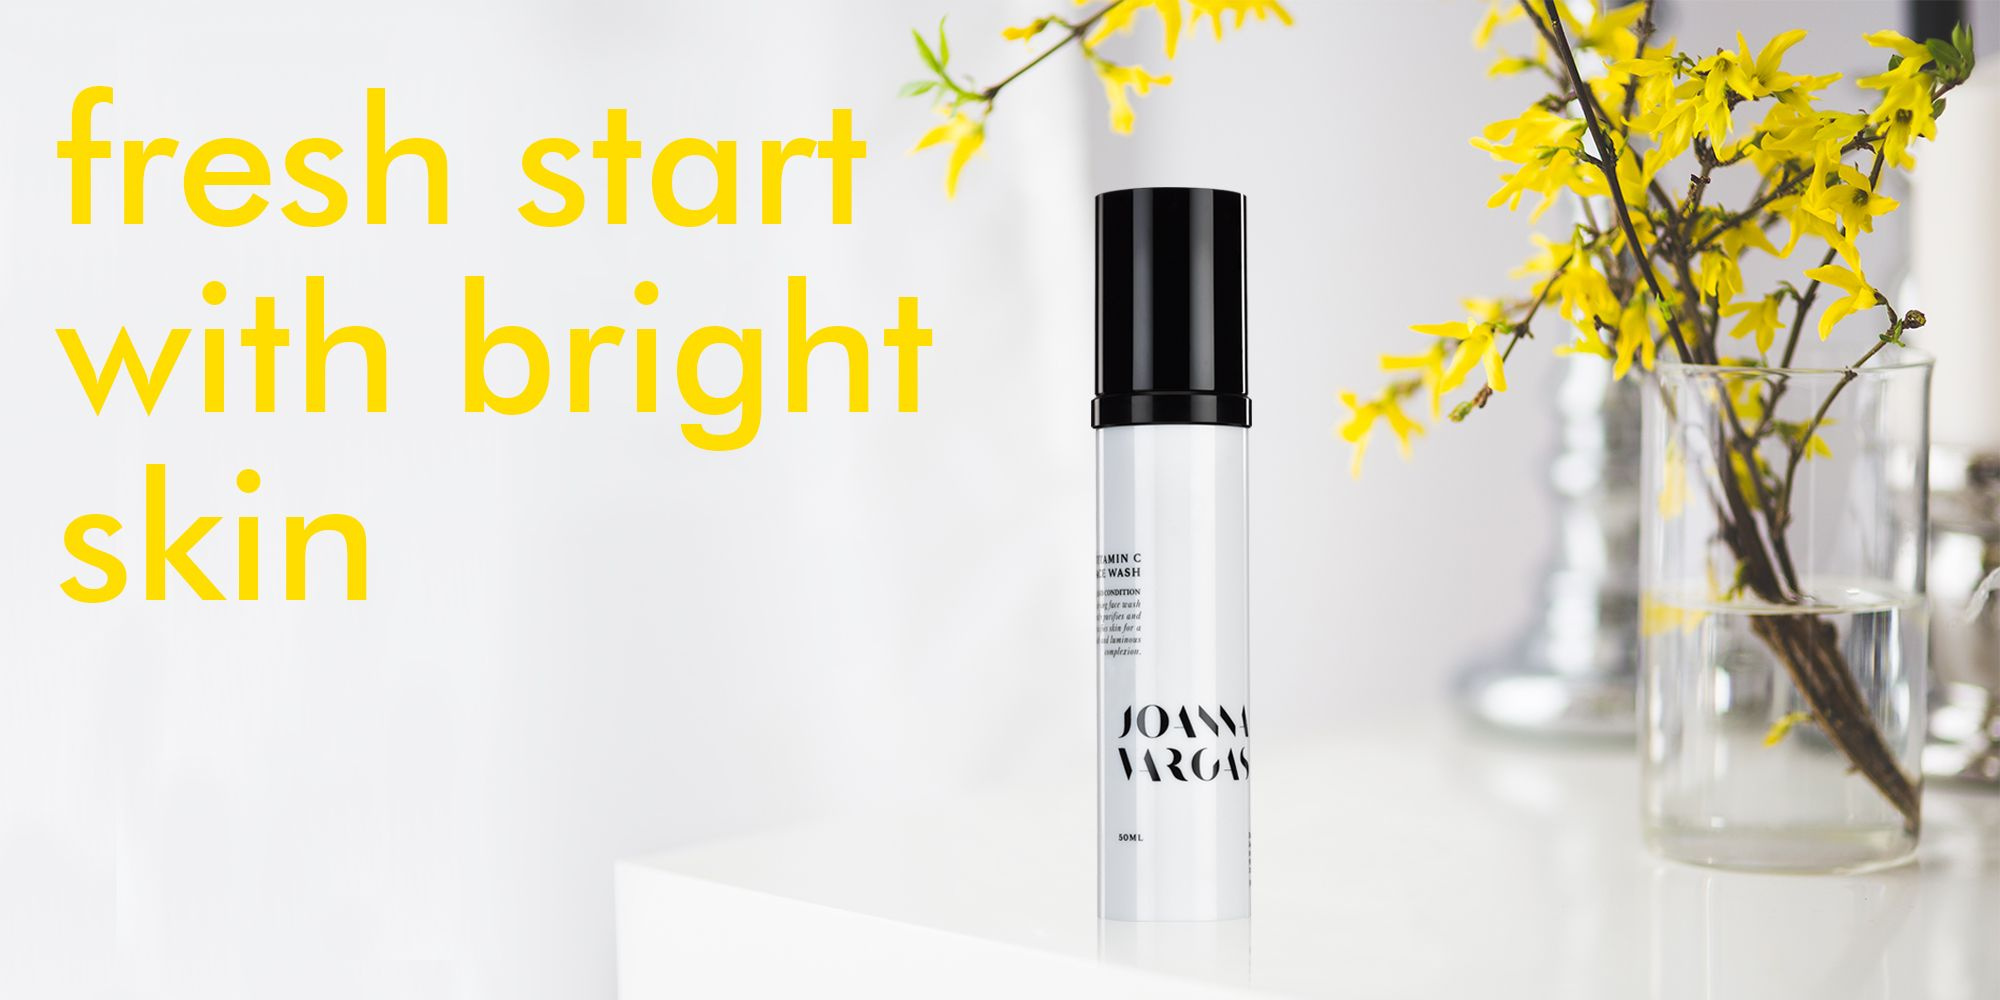 Brighten up your morning with the fresh scent of citrus and fresh skin with our Vitamin C Face Wash. You will feel awake, refreshed and ready to take on the day! http://amzn.to/2k43Bfj #mondays #joannavargas #skincare #beautytip